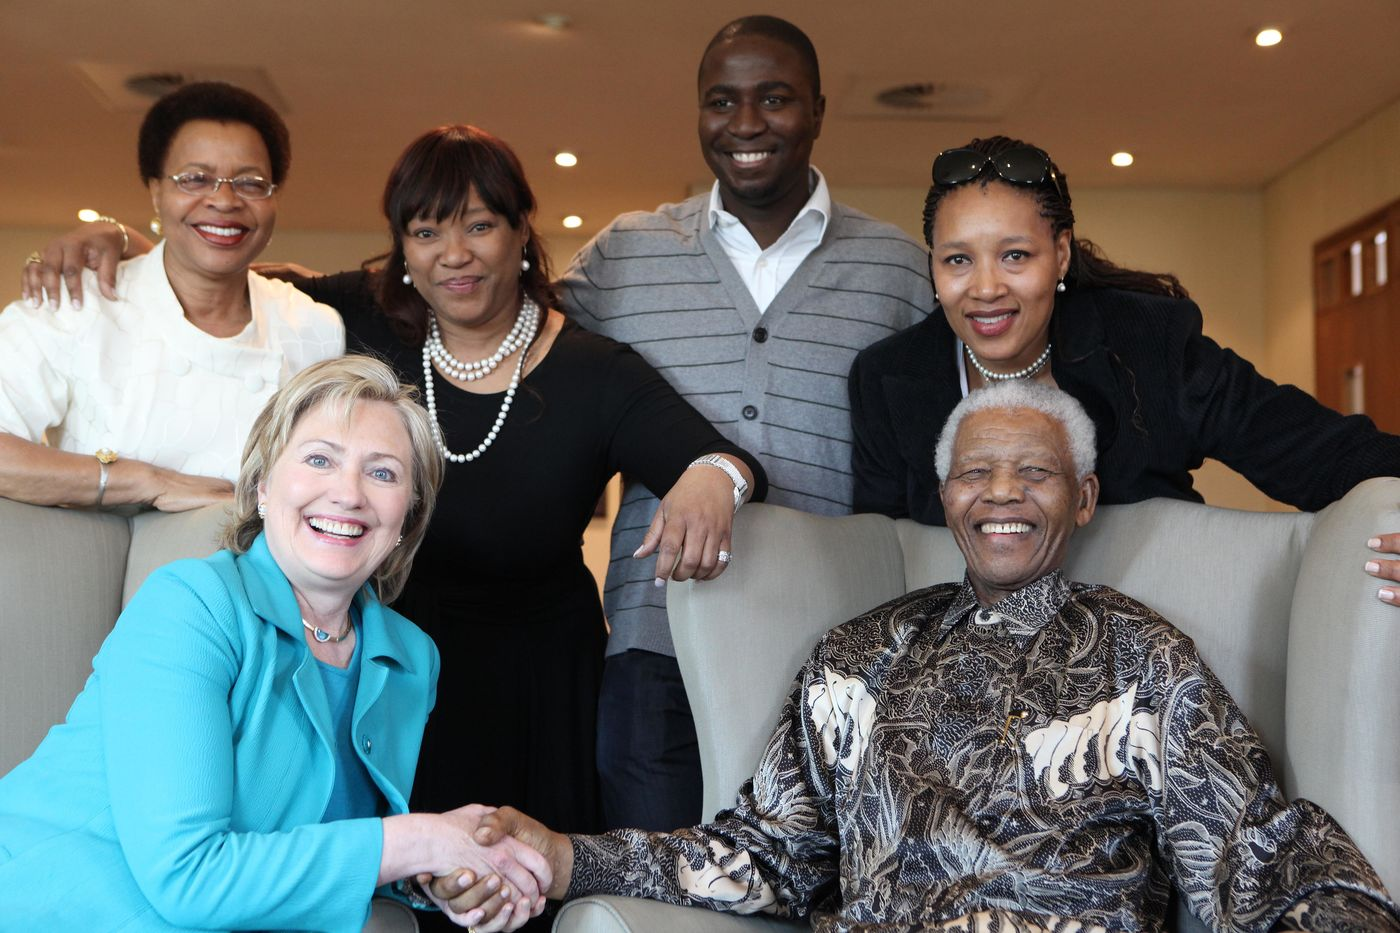 Nelson Mandela, Graca Machel, Zindzi and Zenani and others